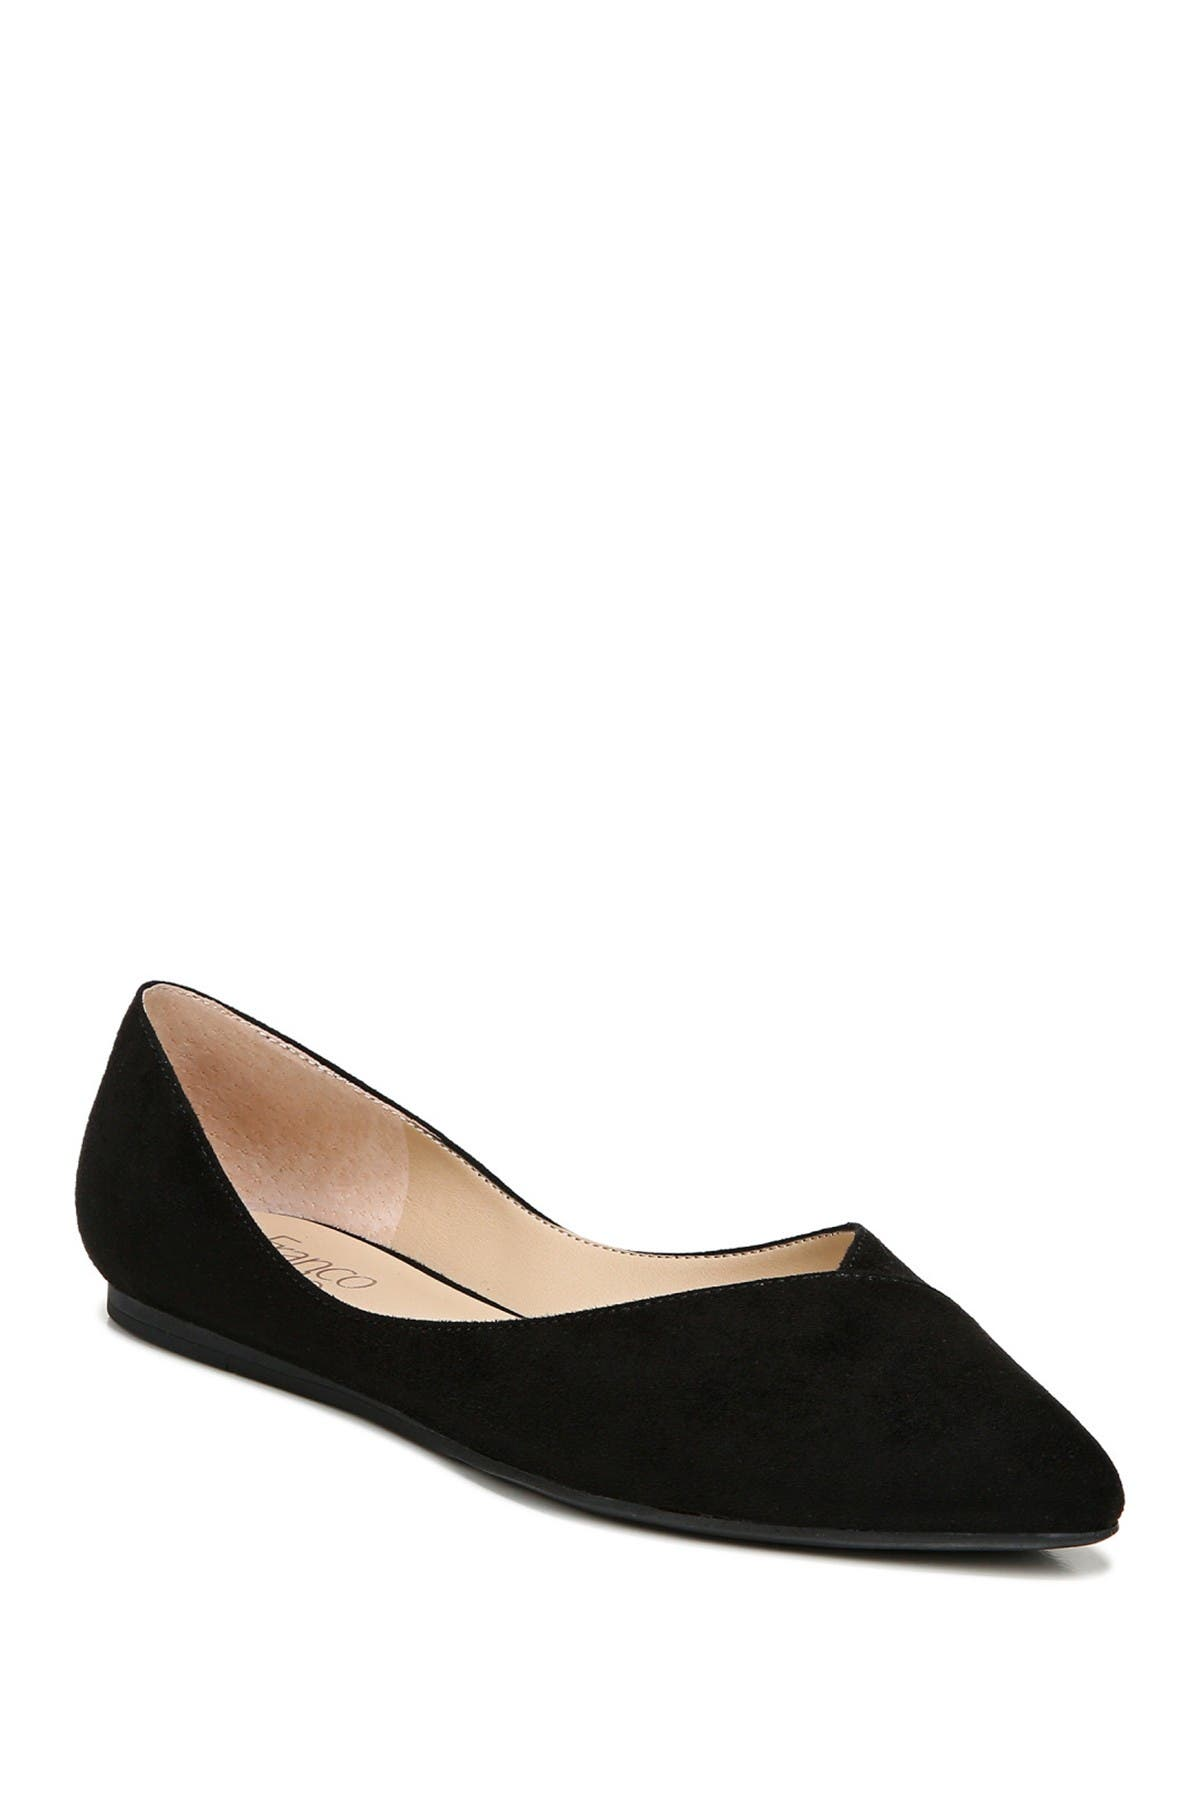 Image of Franco Sarto Havoc Pointed Toe Flat